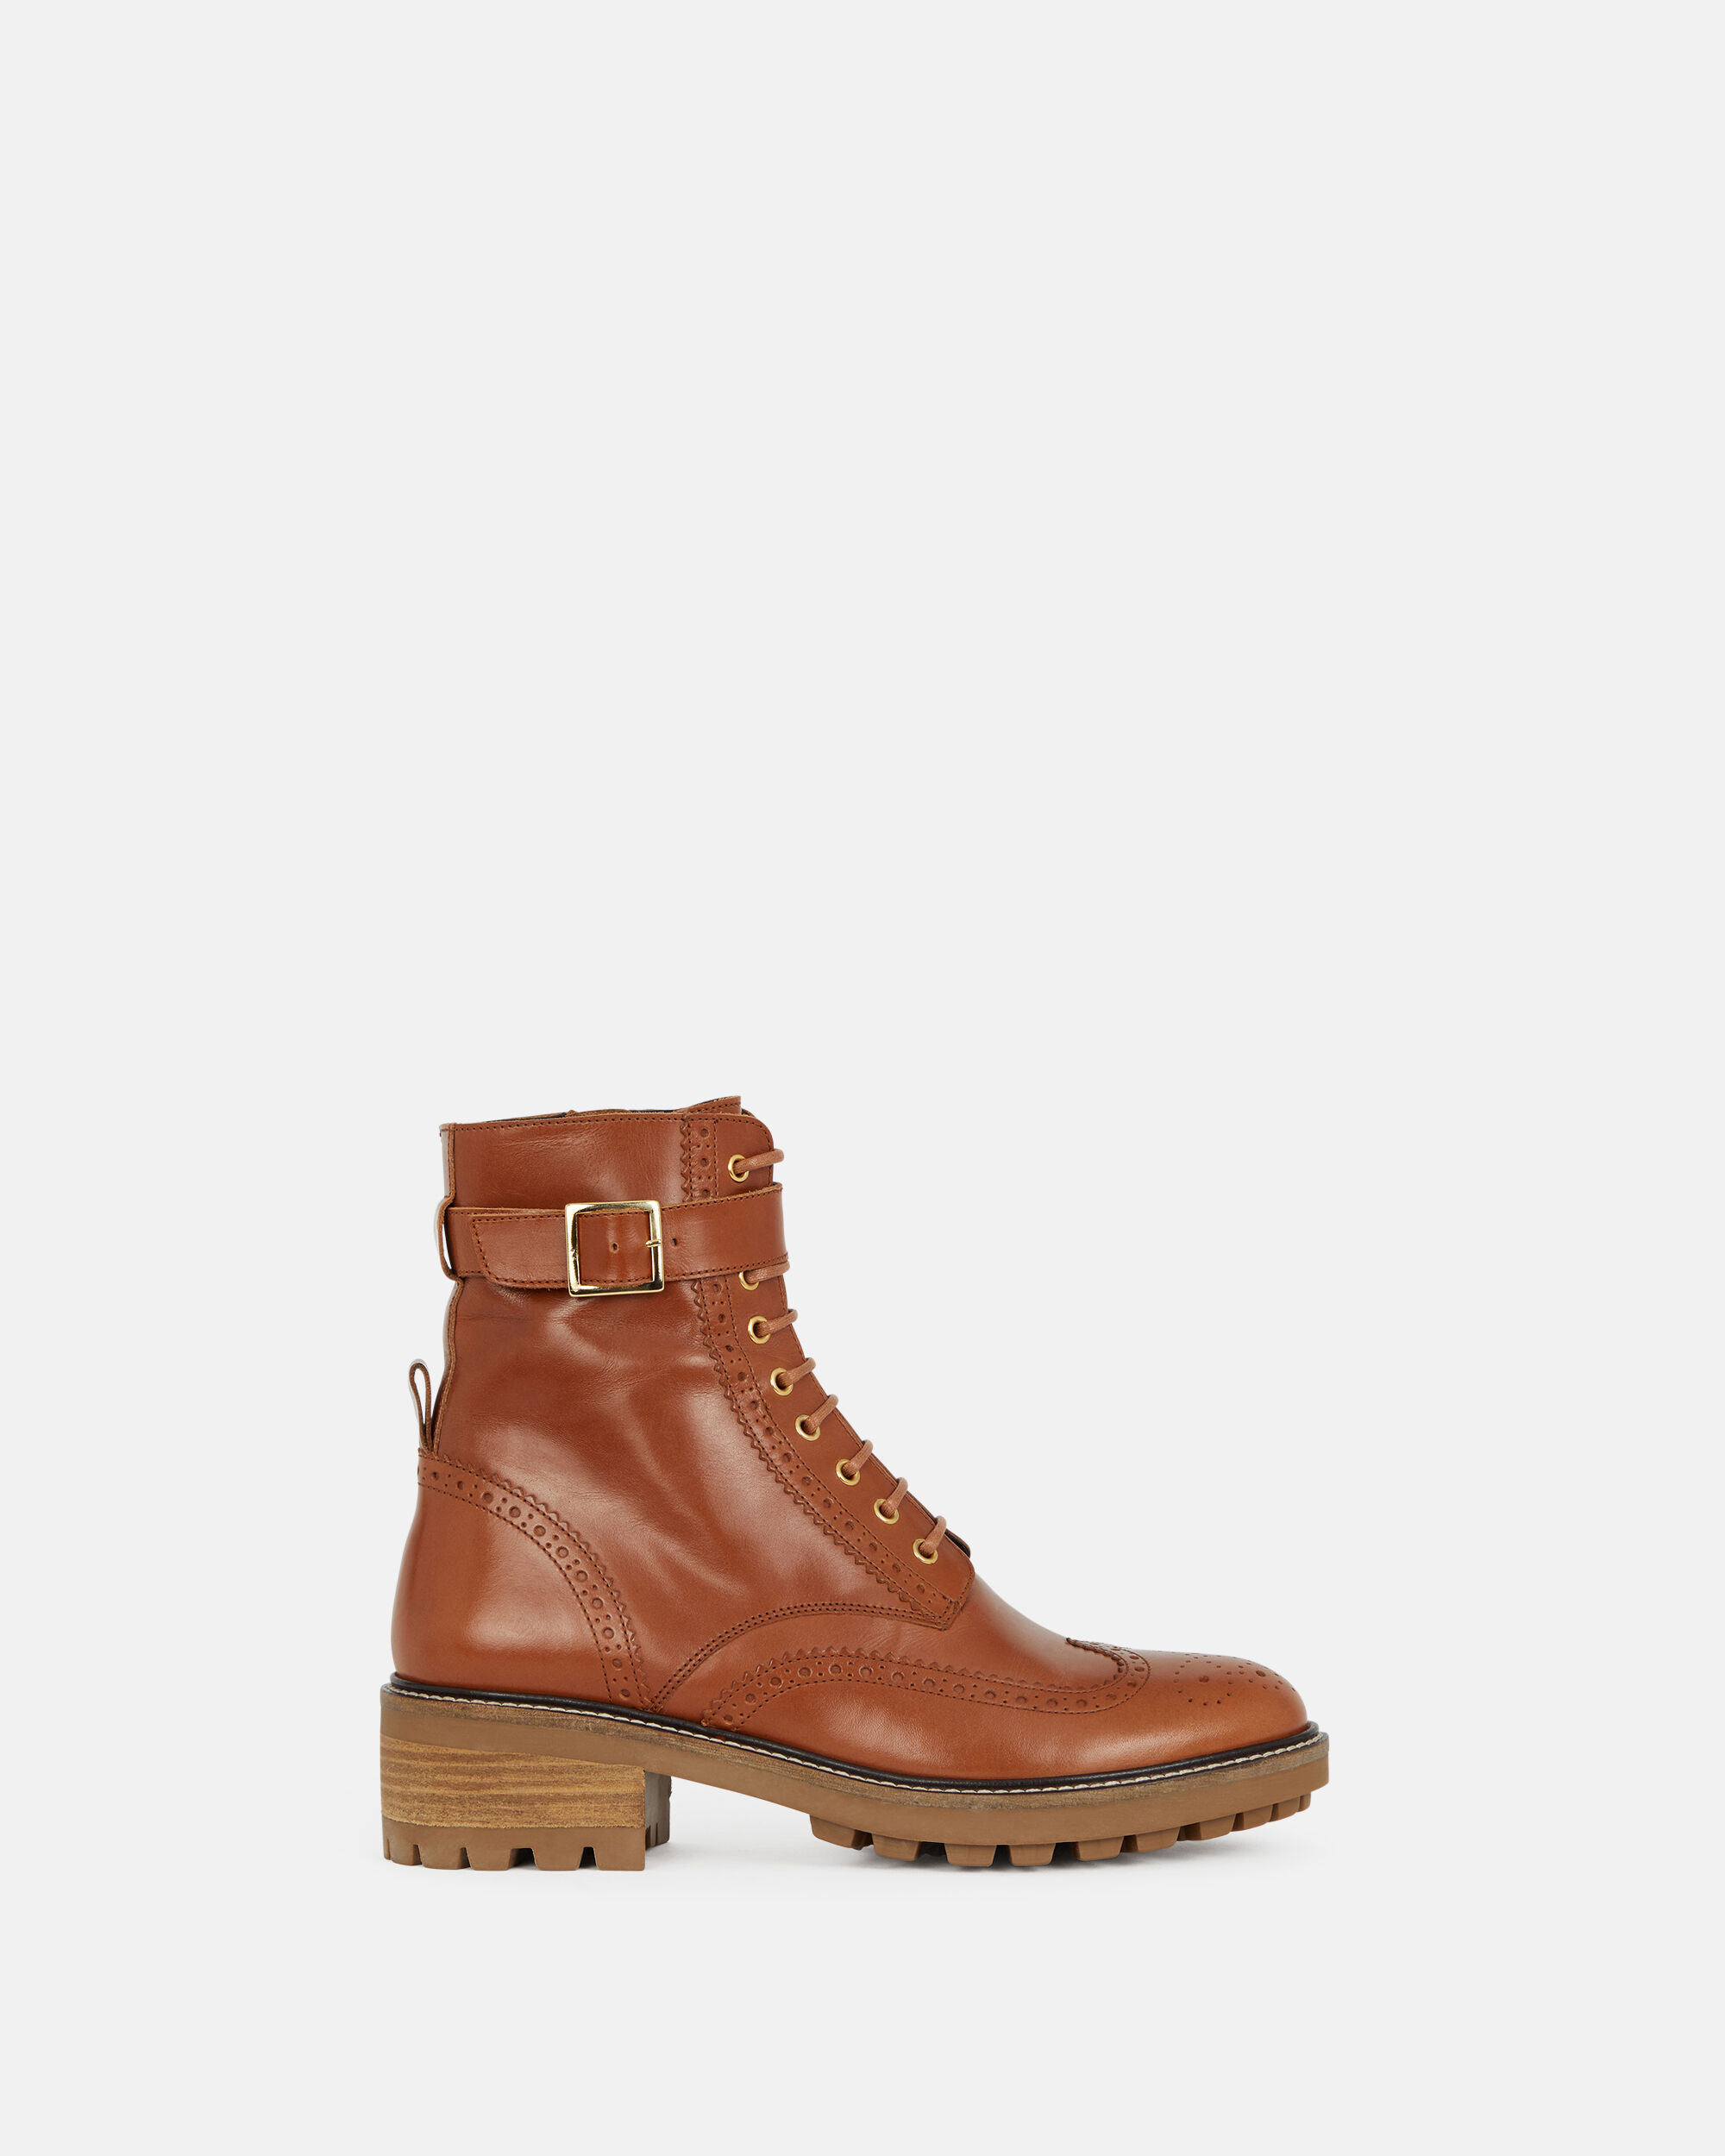 Bottines Femme Boots femme cuir Minelli